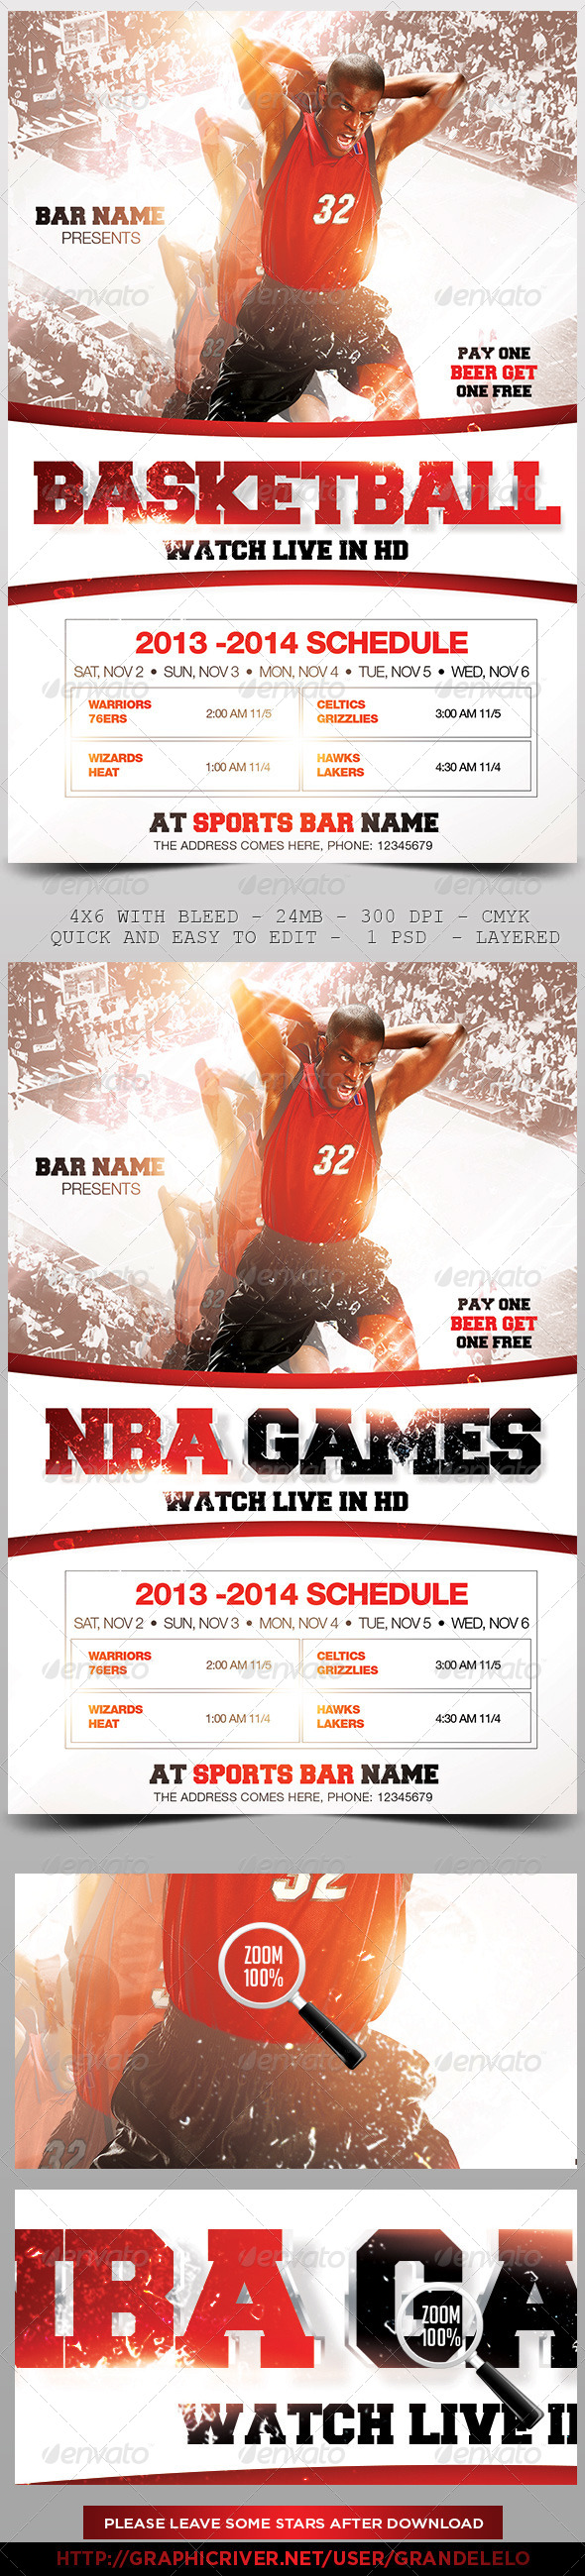 Basketball Flyer Template 3.0 - Sports Events